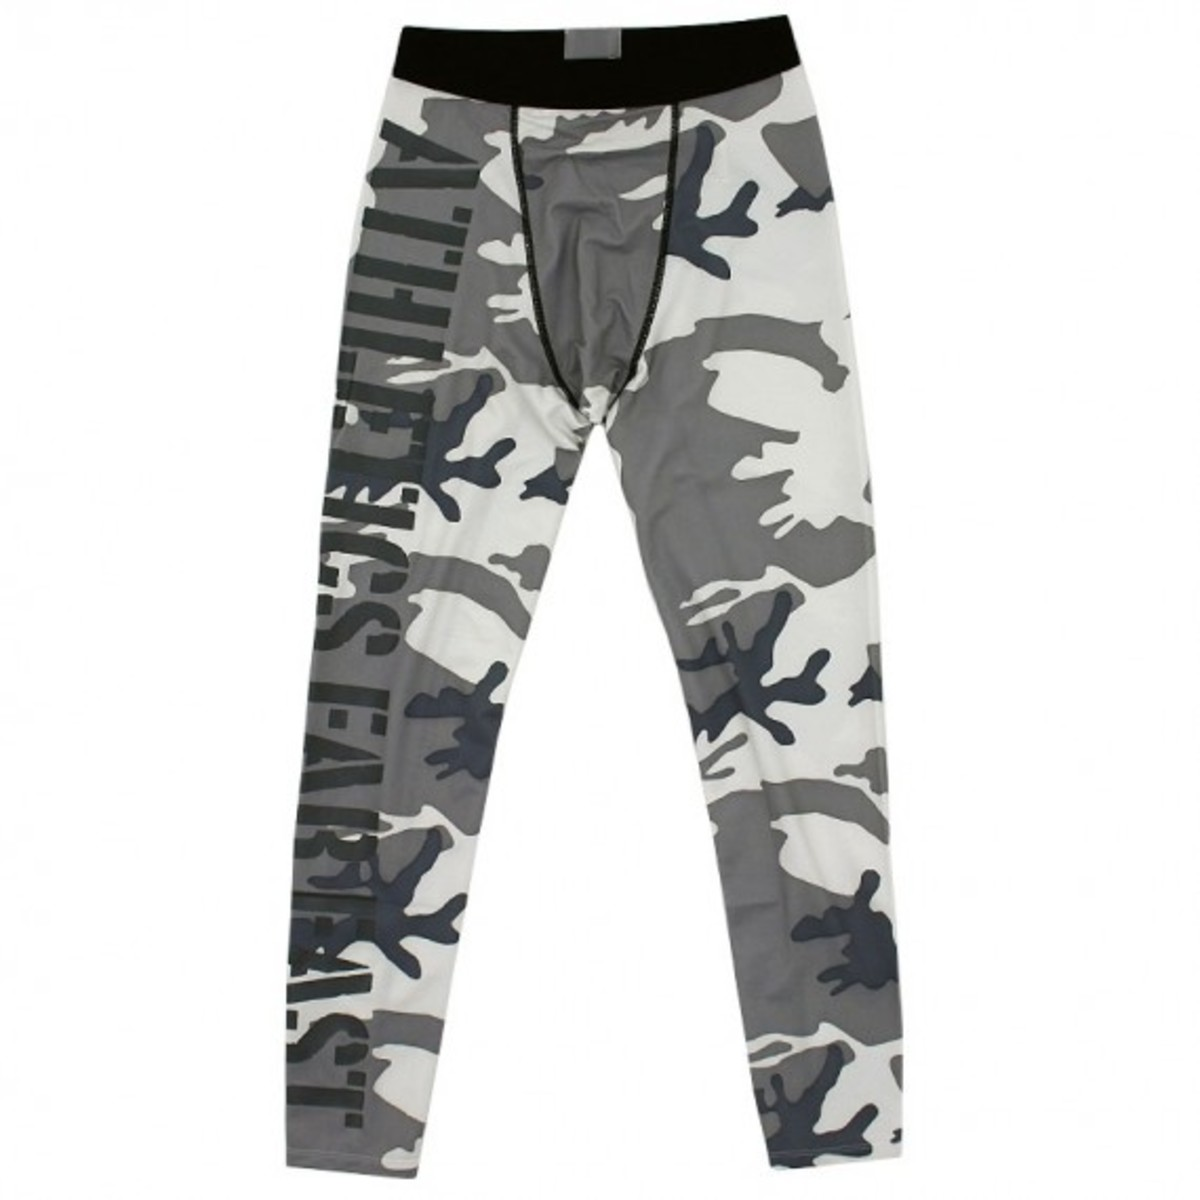 NSW AFE Camo Base Layer Tights White